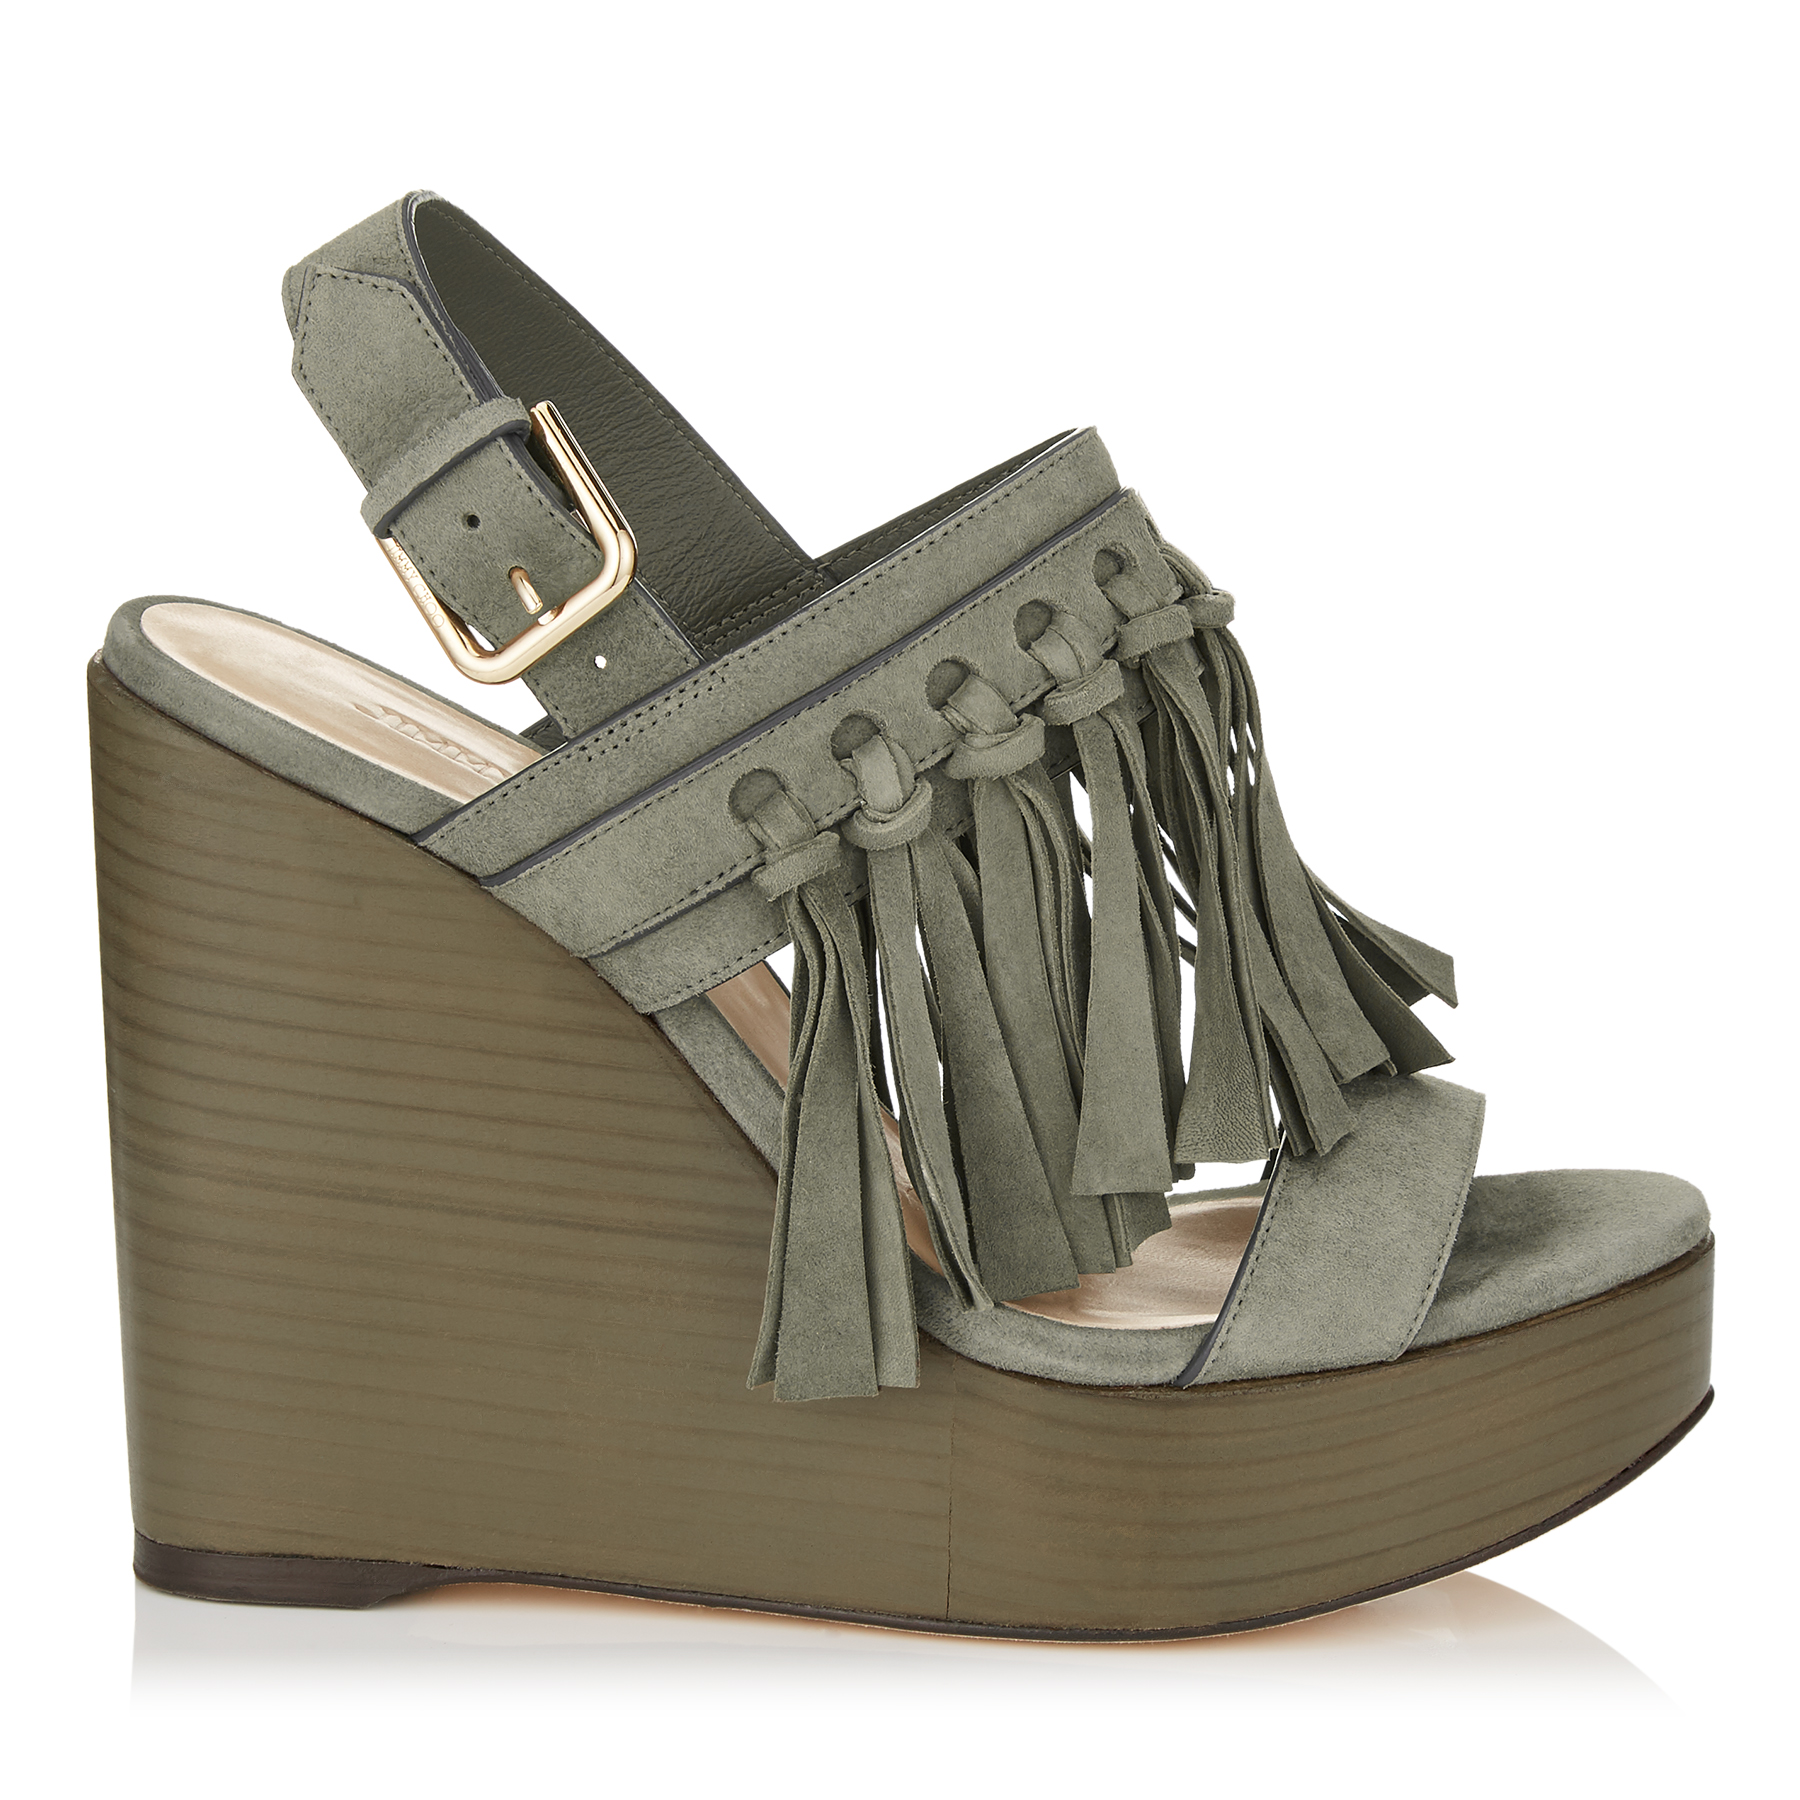 NYA 120 Mink Suede Wedges with Fringing by Jimmy Choo